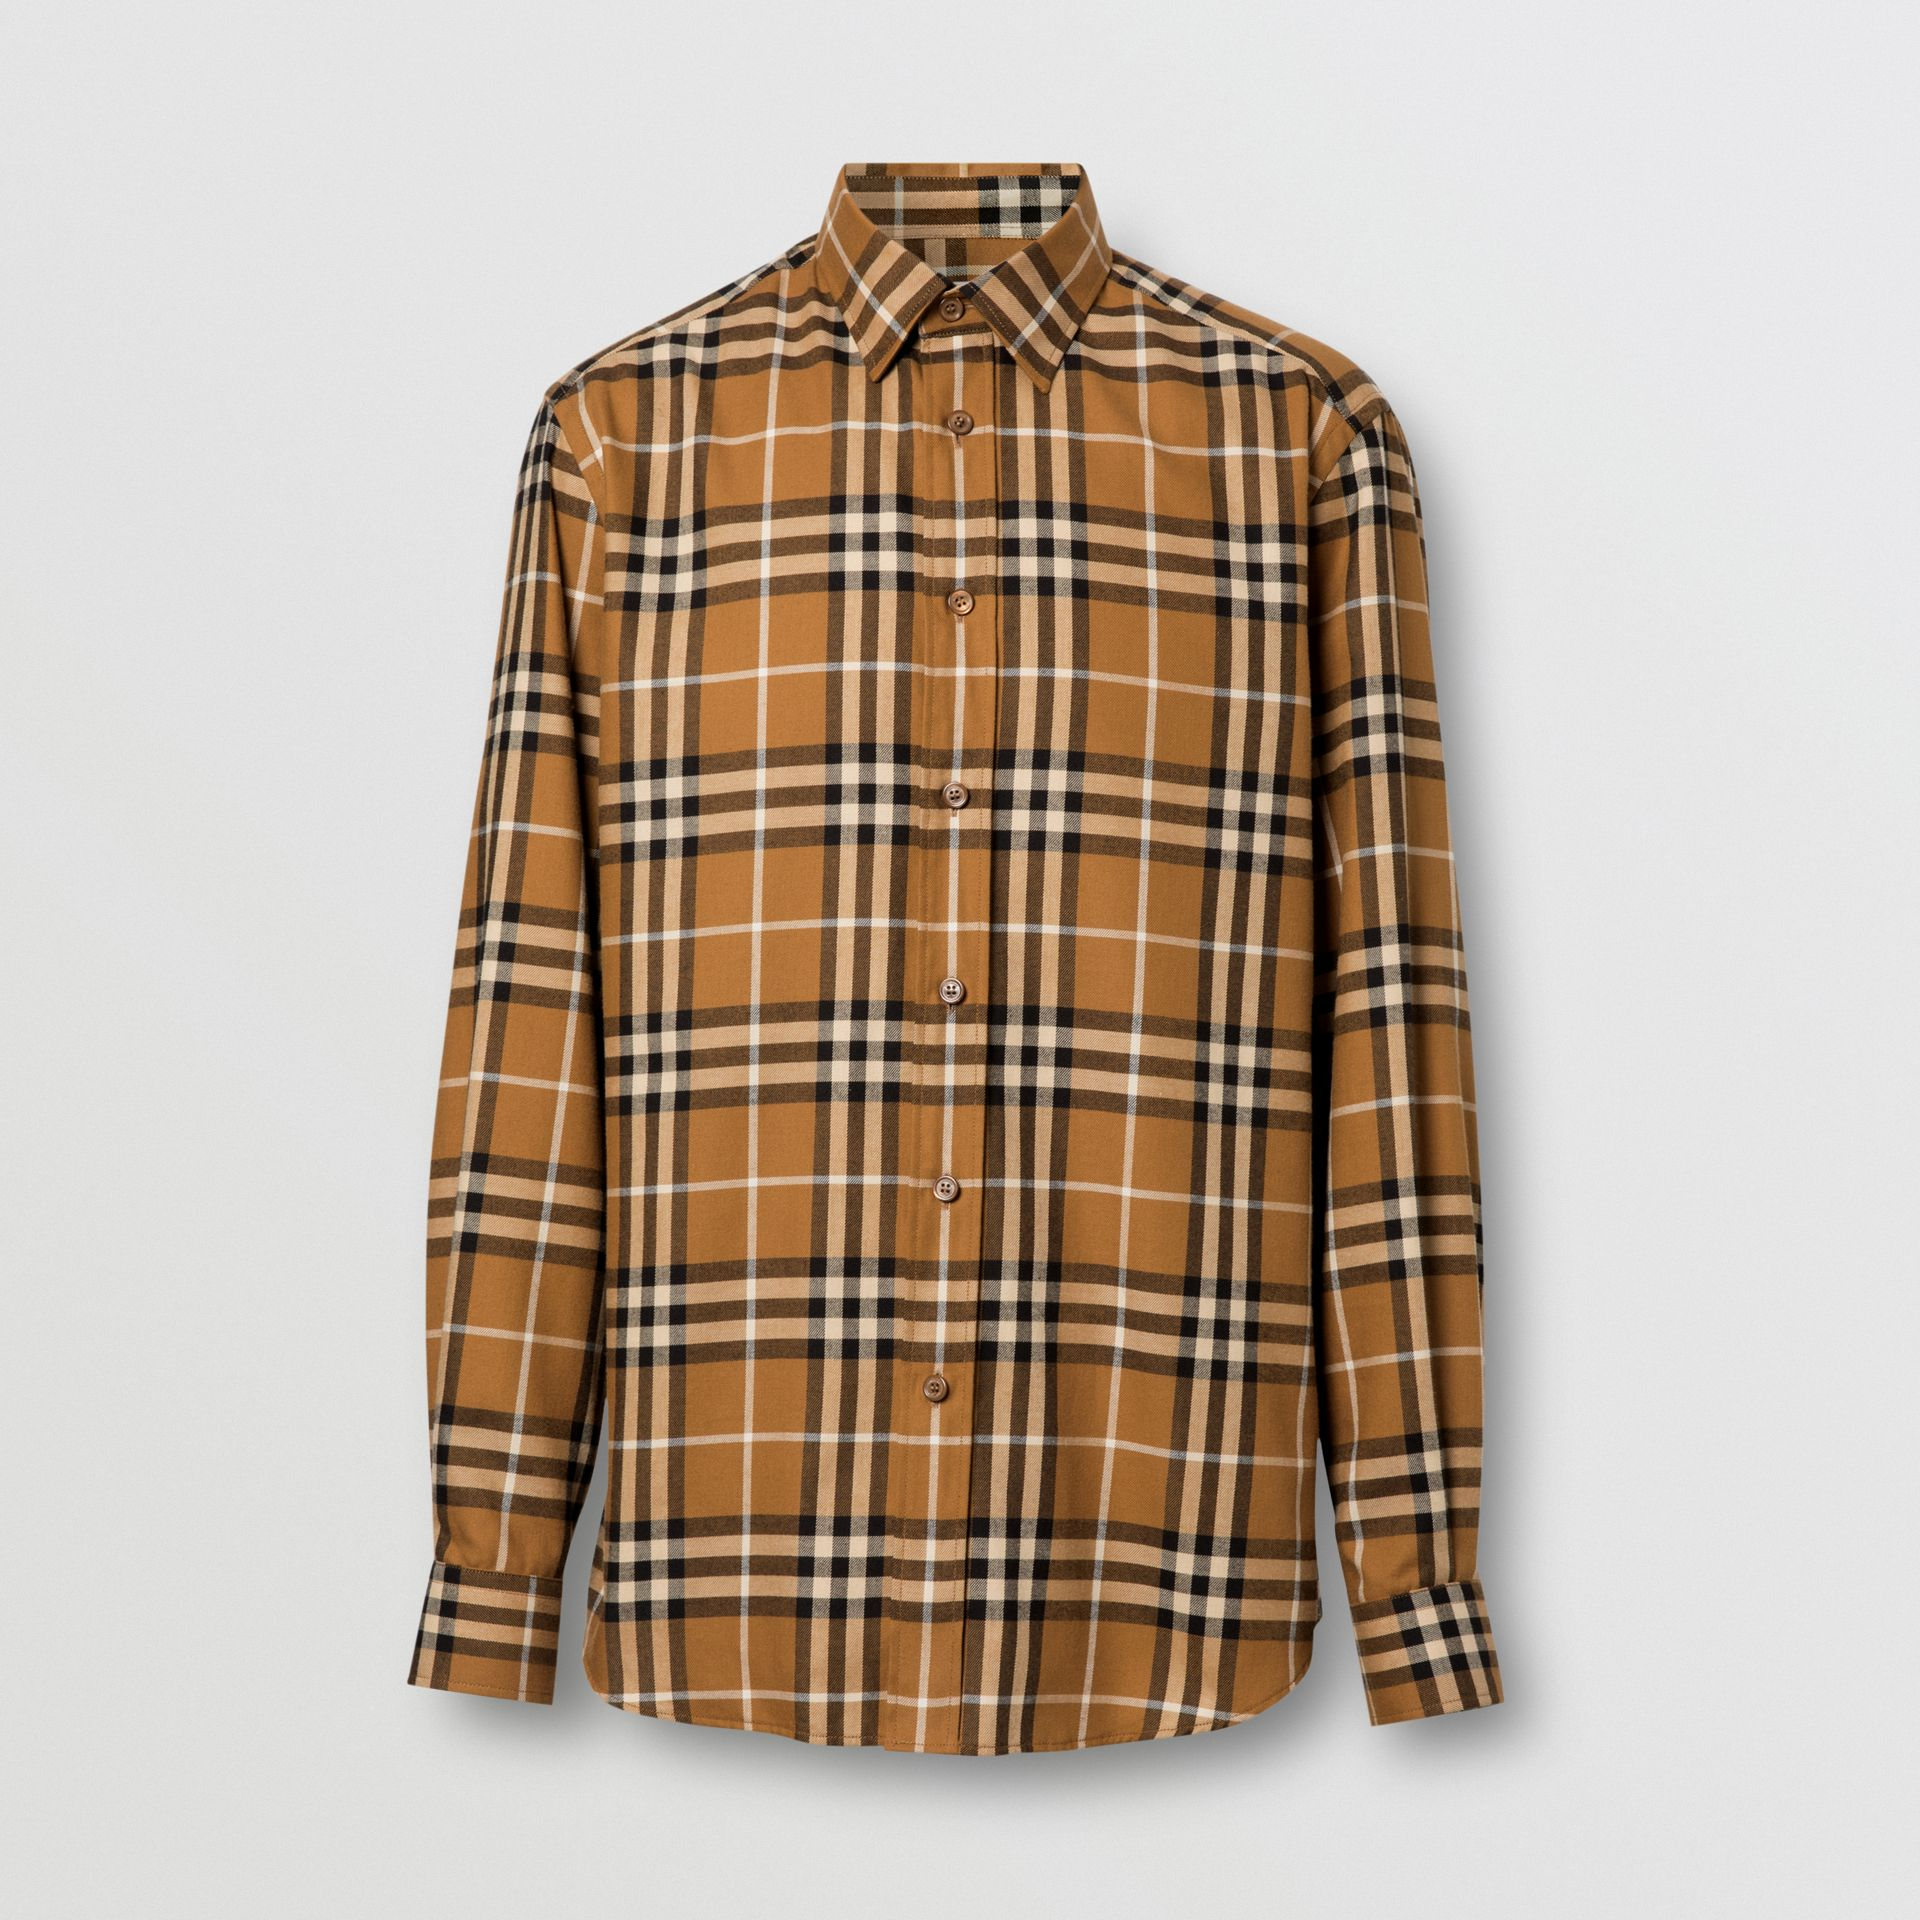 Vintage Check Cotton Flannel Shirt in Warm Walnut - Men | Burberry - gallery image 3